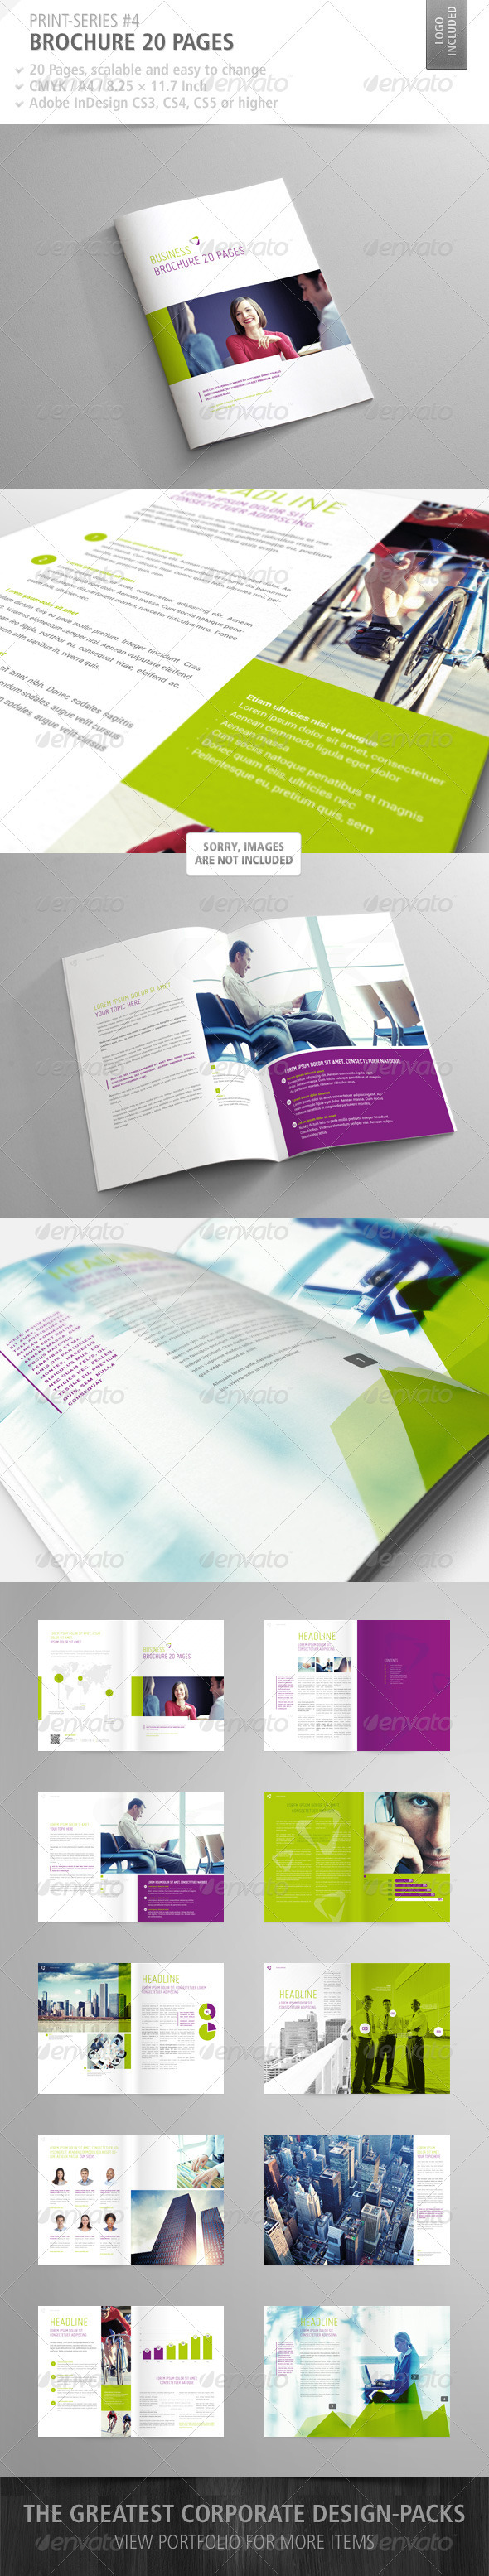 GraphicRiver Brochure 20 Pages Print-Series #4 3269410